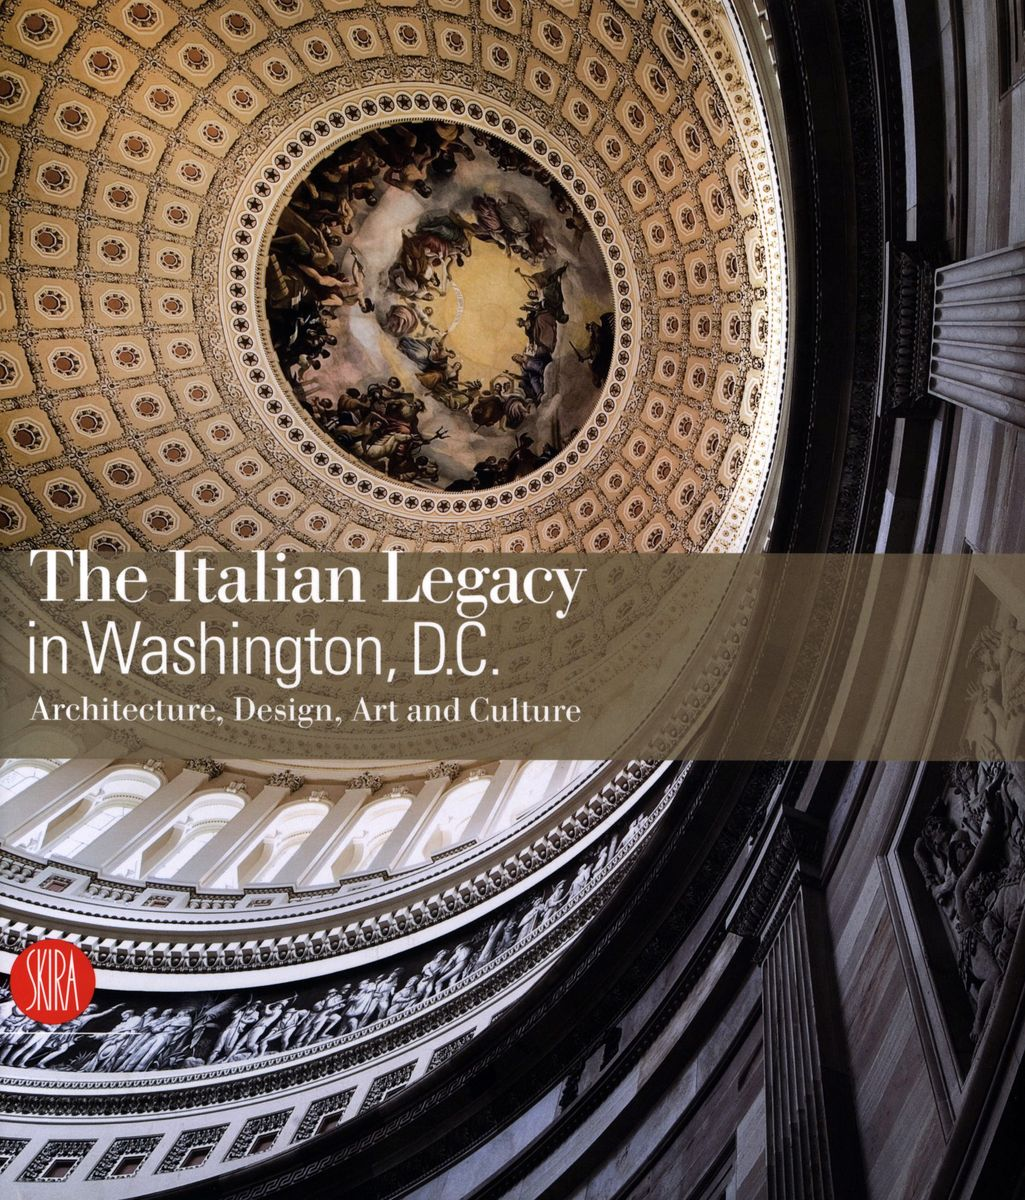 The Italian Legacy in Washington DC. The Italian Legacy on Architecture, Design, Art, and Culture по 1 500.00 руб от изд. Skira Editore